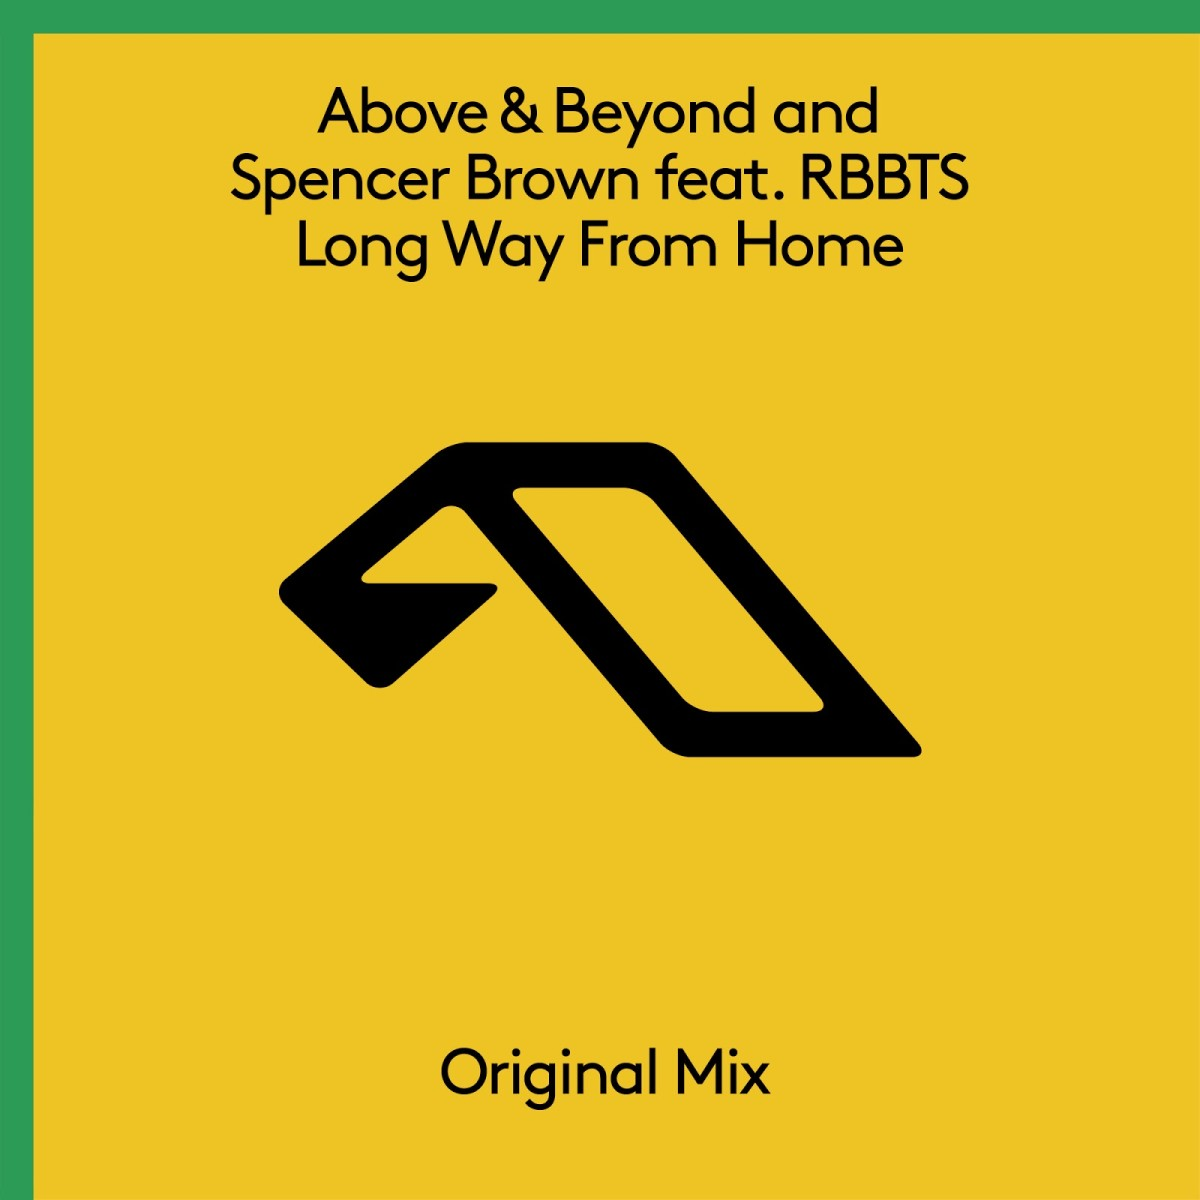 "Above & Beyond and SPencer Brown feat. RBBTS ""Long Way From Home"" EDM.com Video Premiere + Album Art"